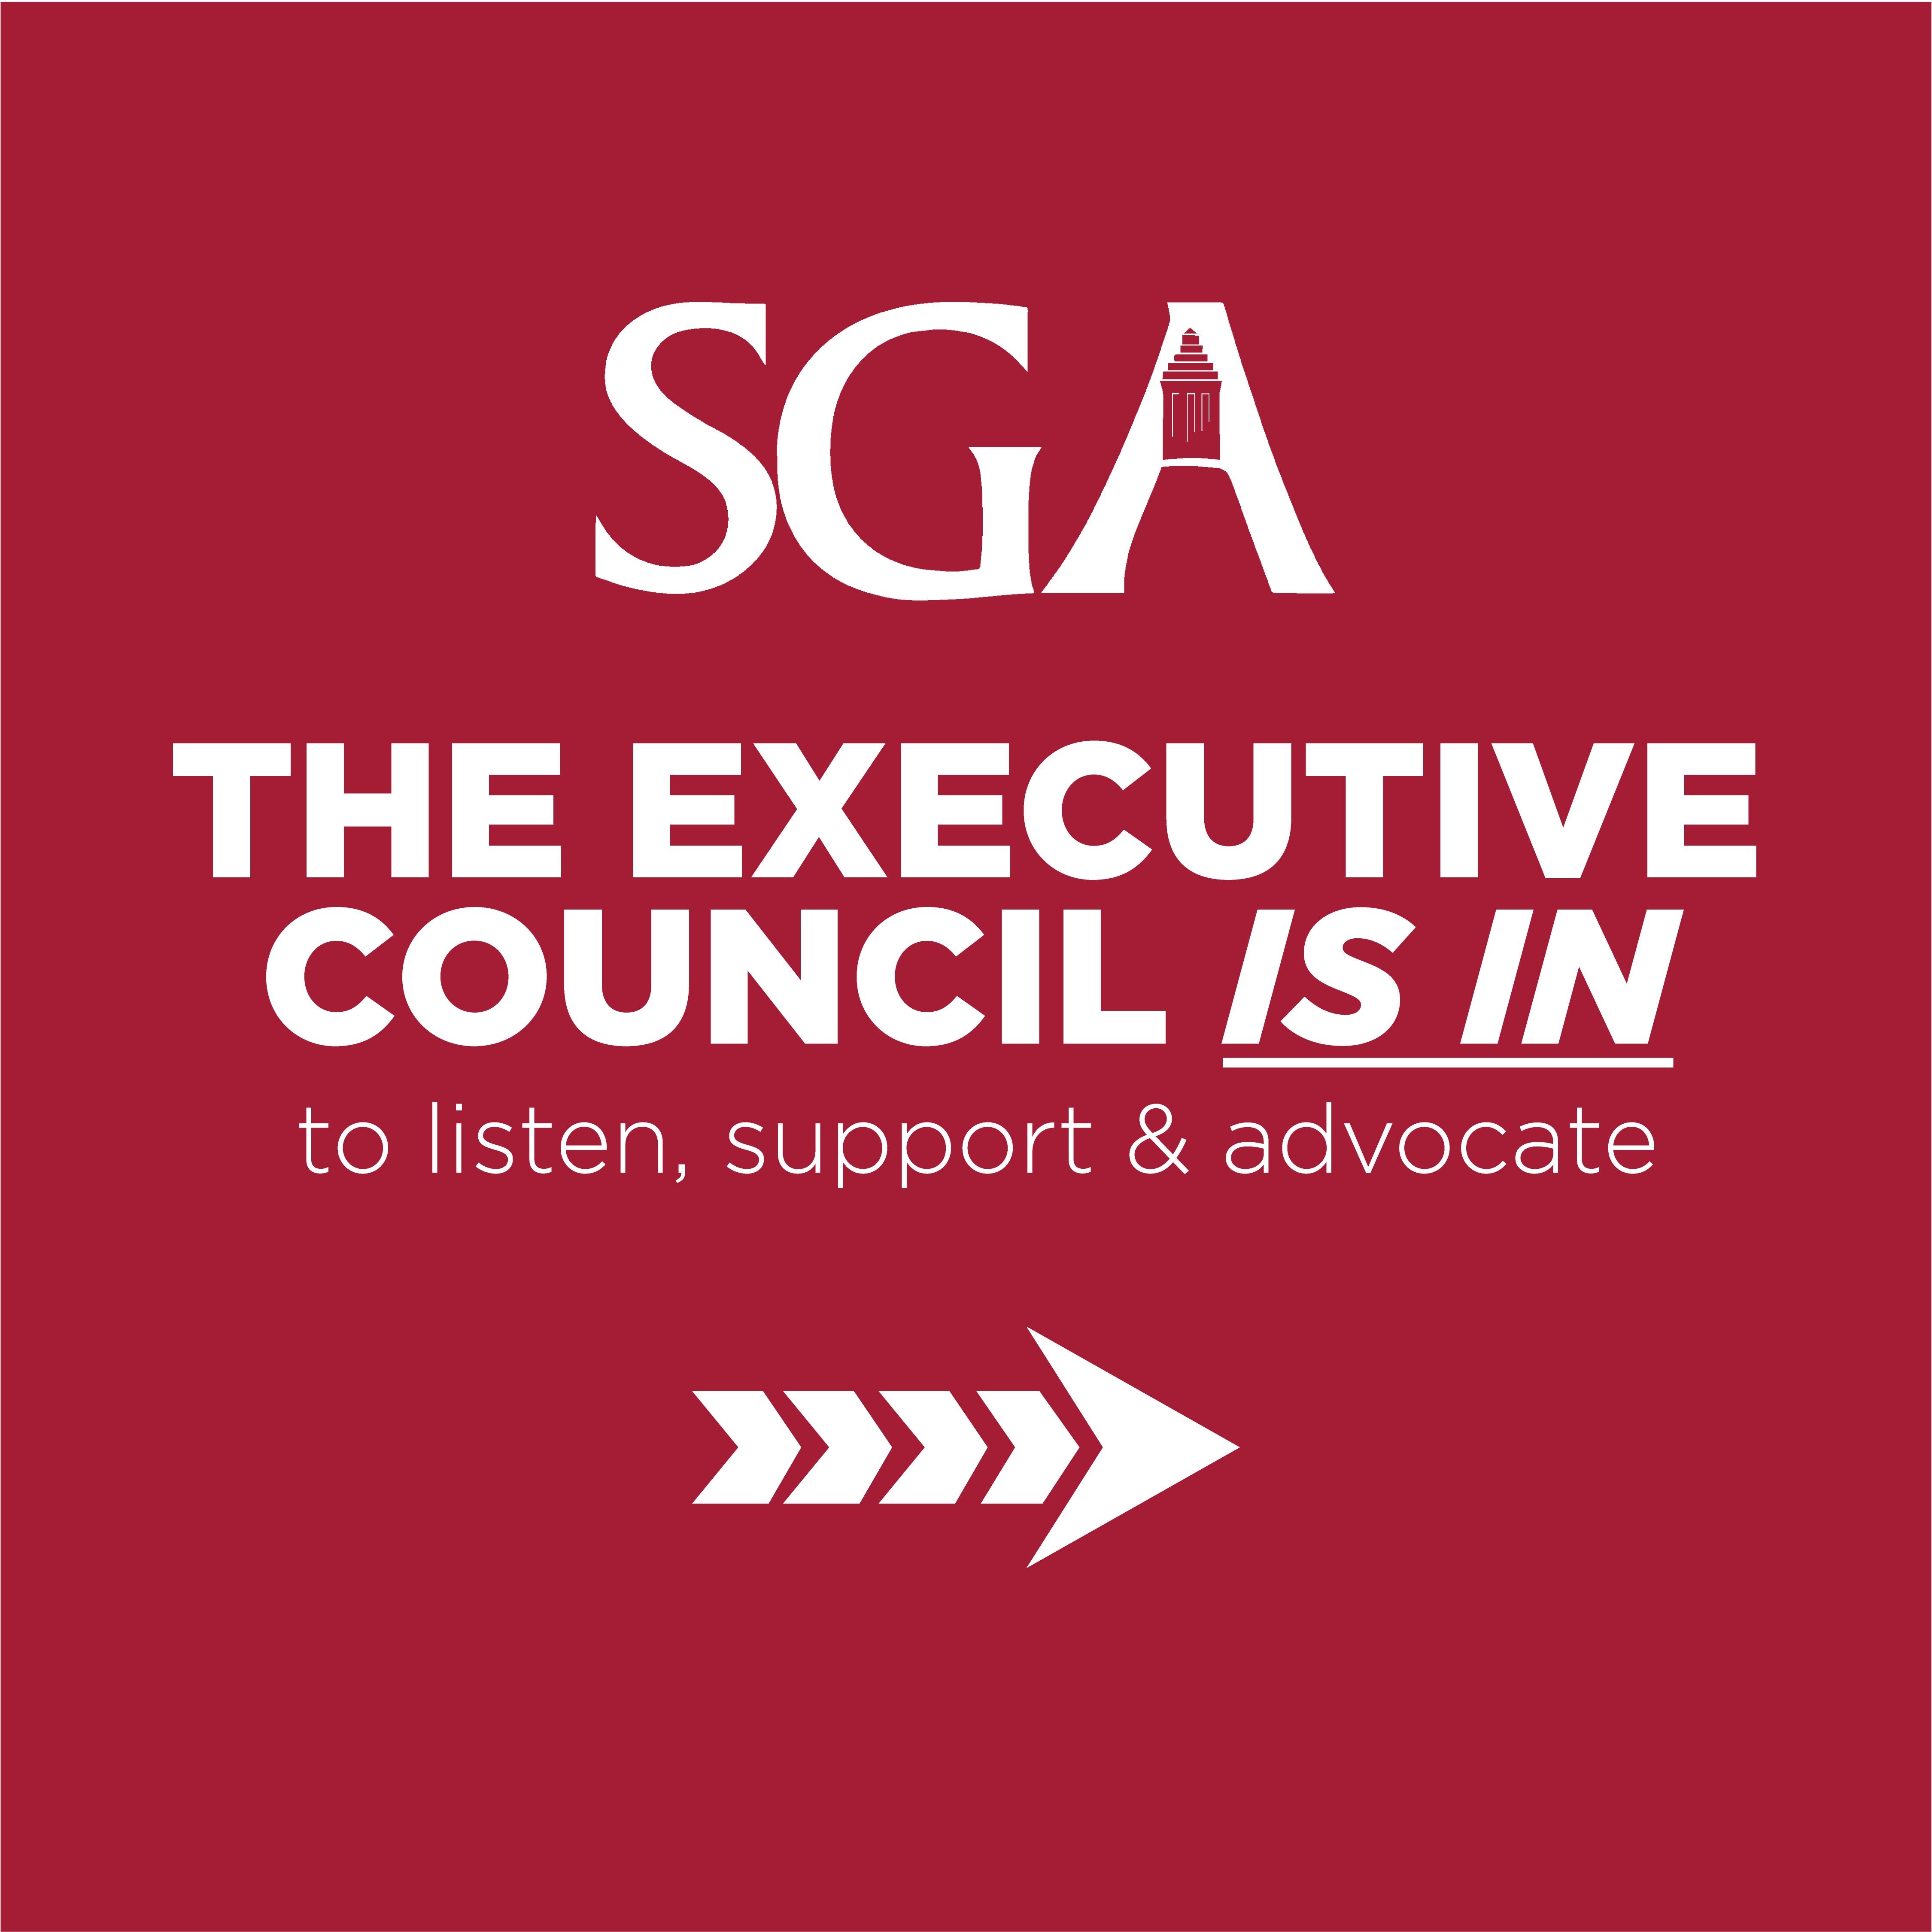 The Executive Council is in to listen, support and advocate